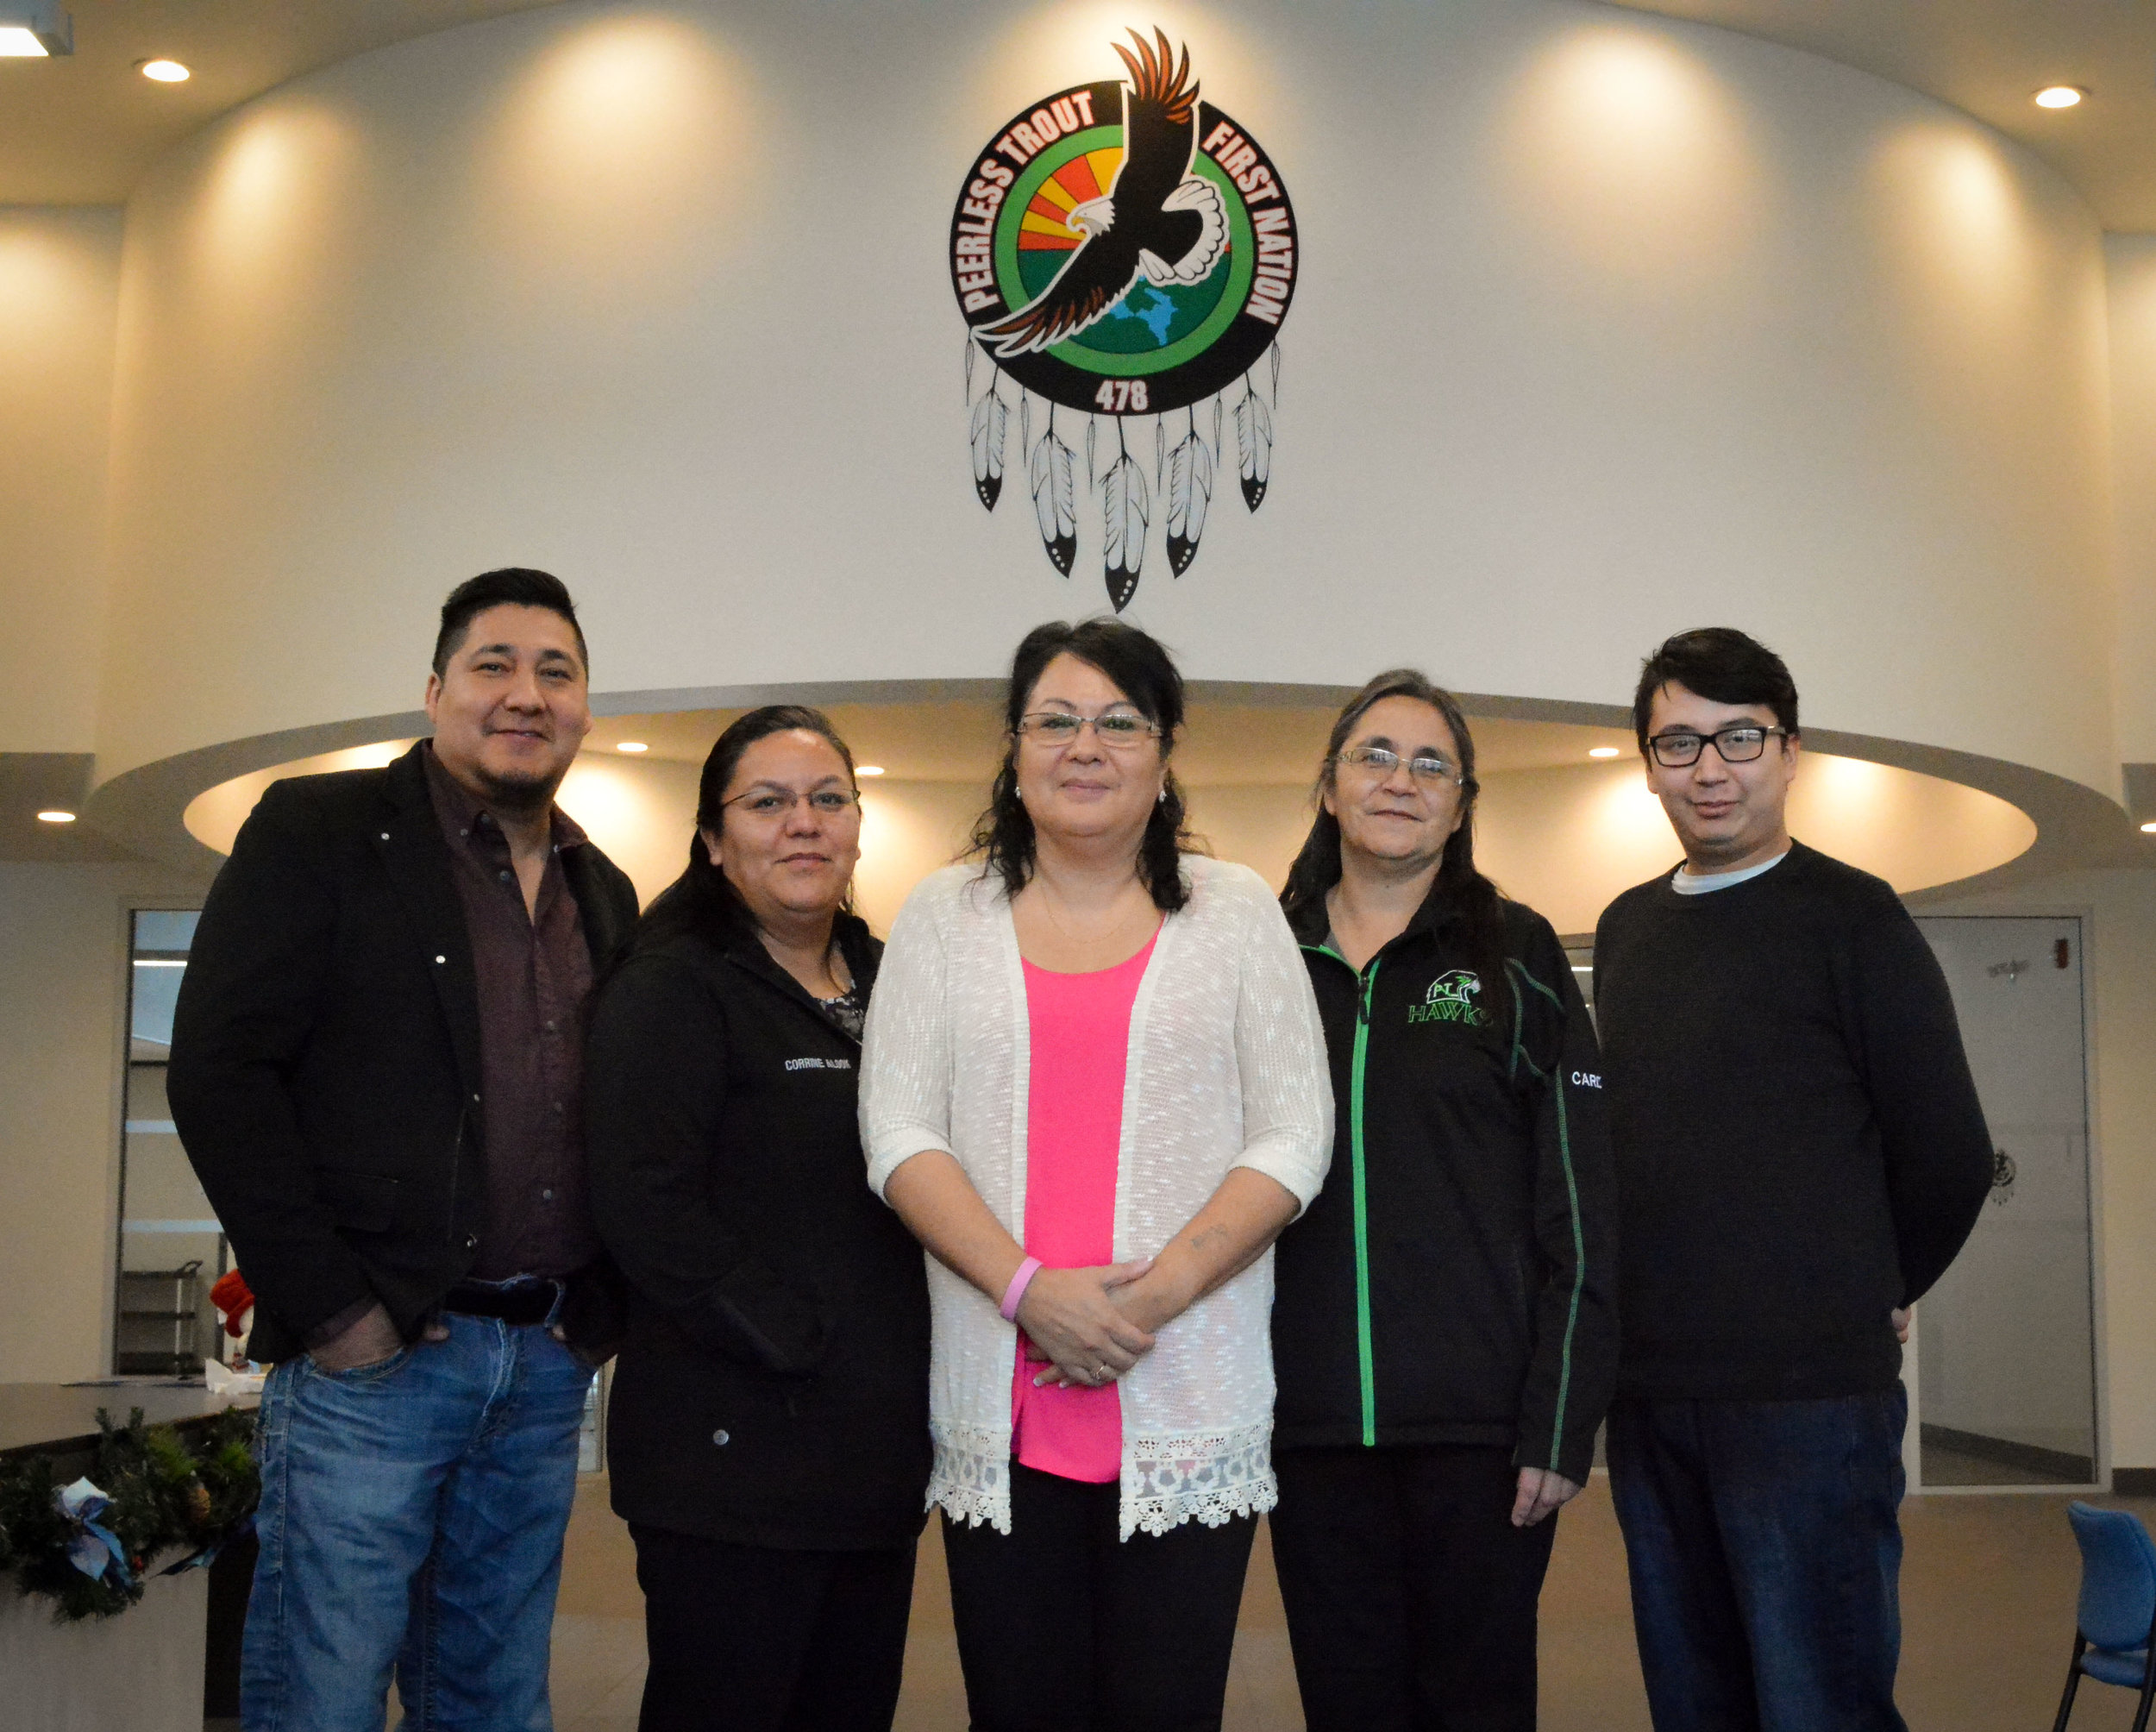 Peerless Lake councillor - Gilbert Okemow, Peerless Lake Councillor - corrine Alook, Peerless trout chief - Gladys Okemow, Trout Lake councillor- Judy Sinclair, Trout Lake councillor - mark cardinal